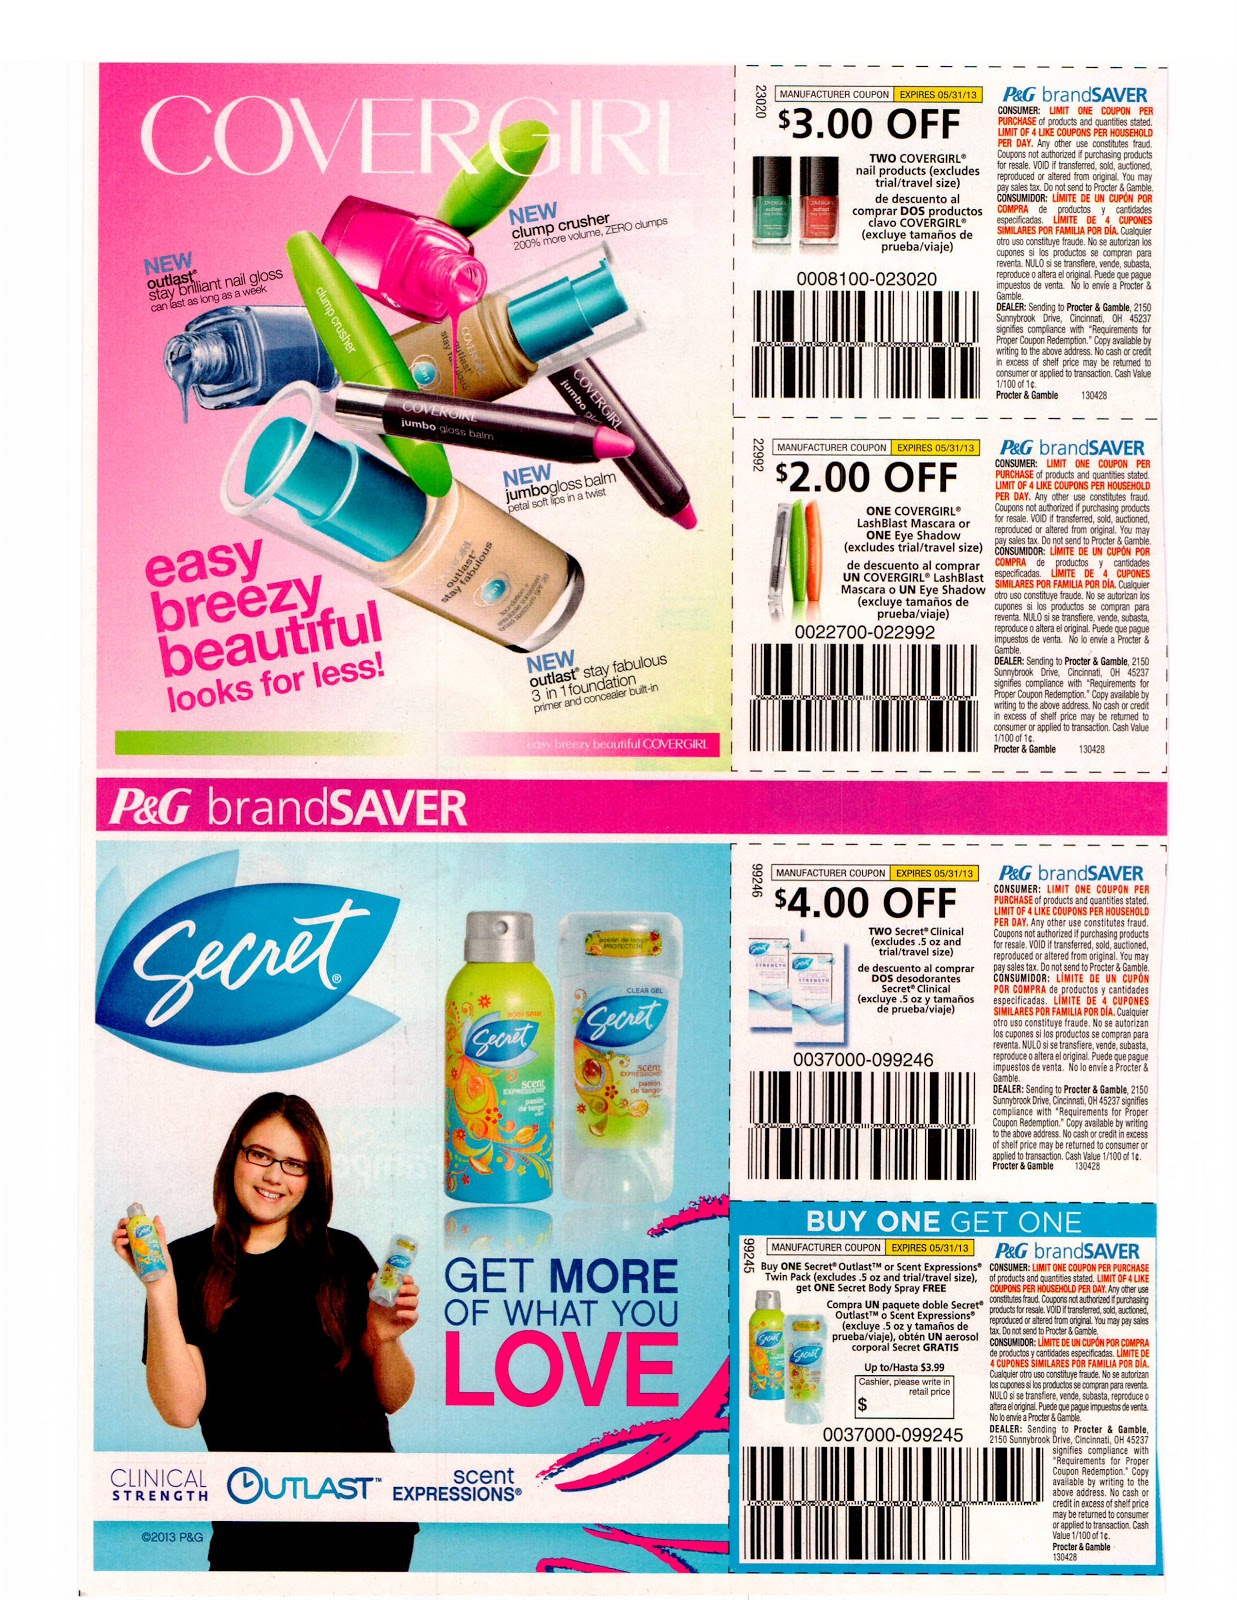 ... Coupon Inserts: SOLD OUT 4/28 Proctor and Gamble Whole Coupon Inserts